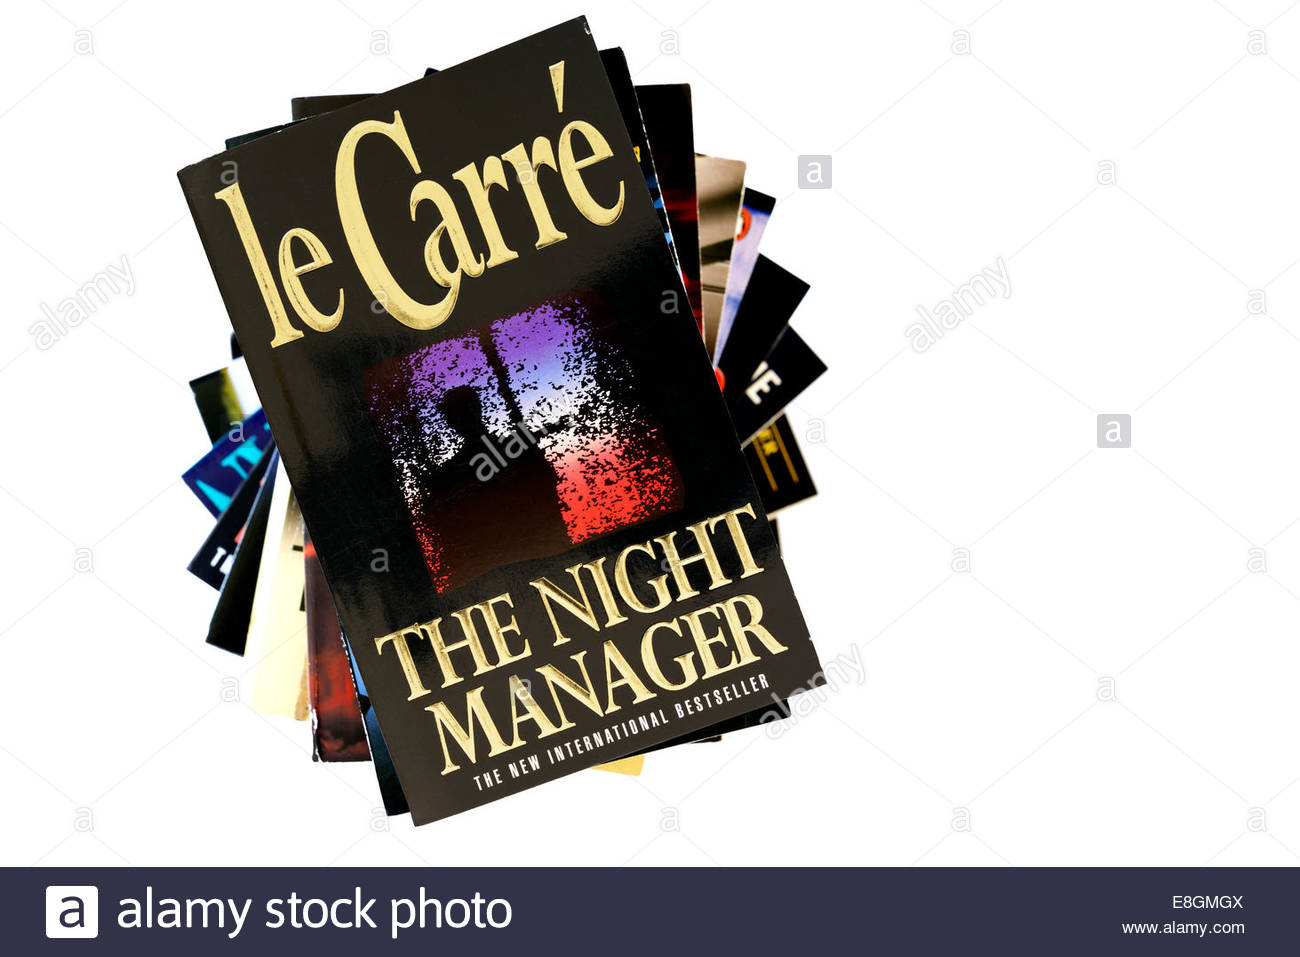 John le Carré 1993 book title The Night Manager, stacked used books, England - Stock Image